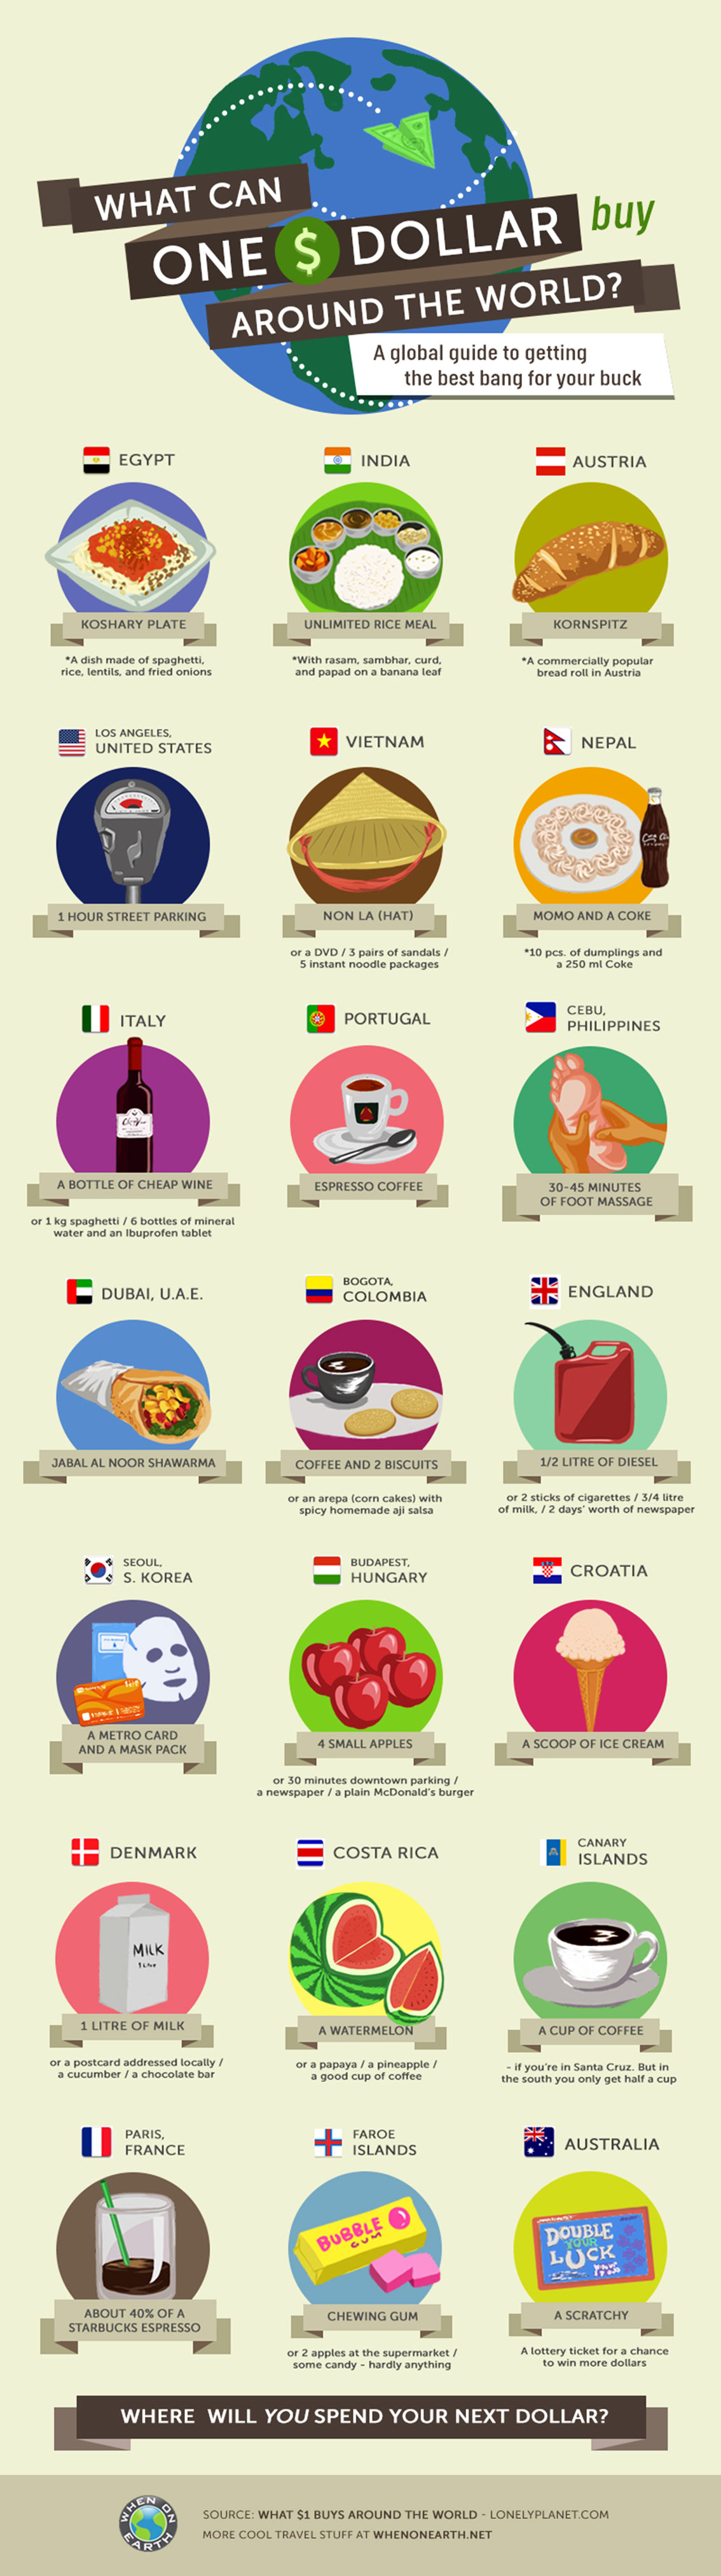 What Can You Buy for a Dollar Around the World - Travel Infographic